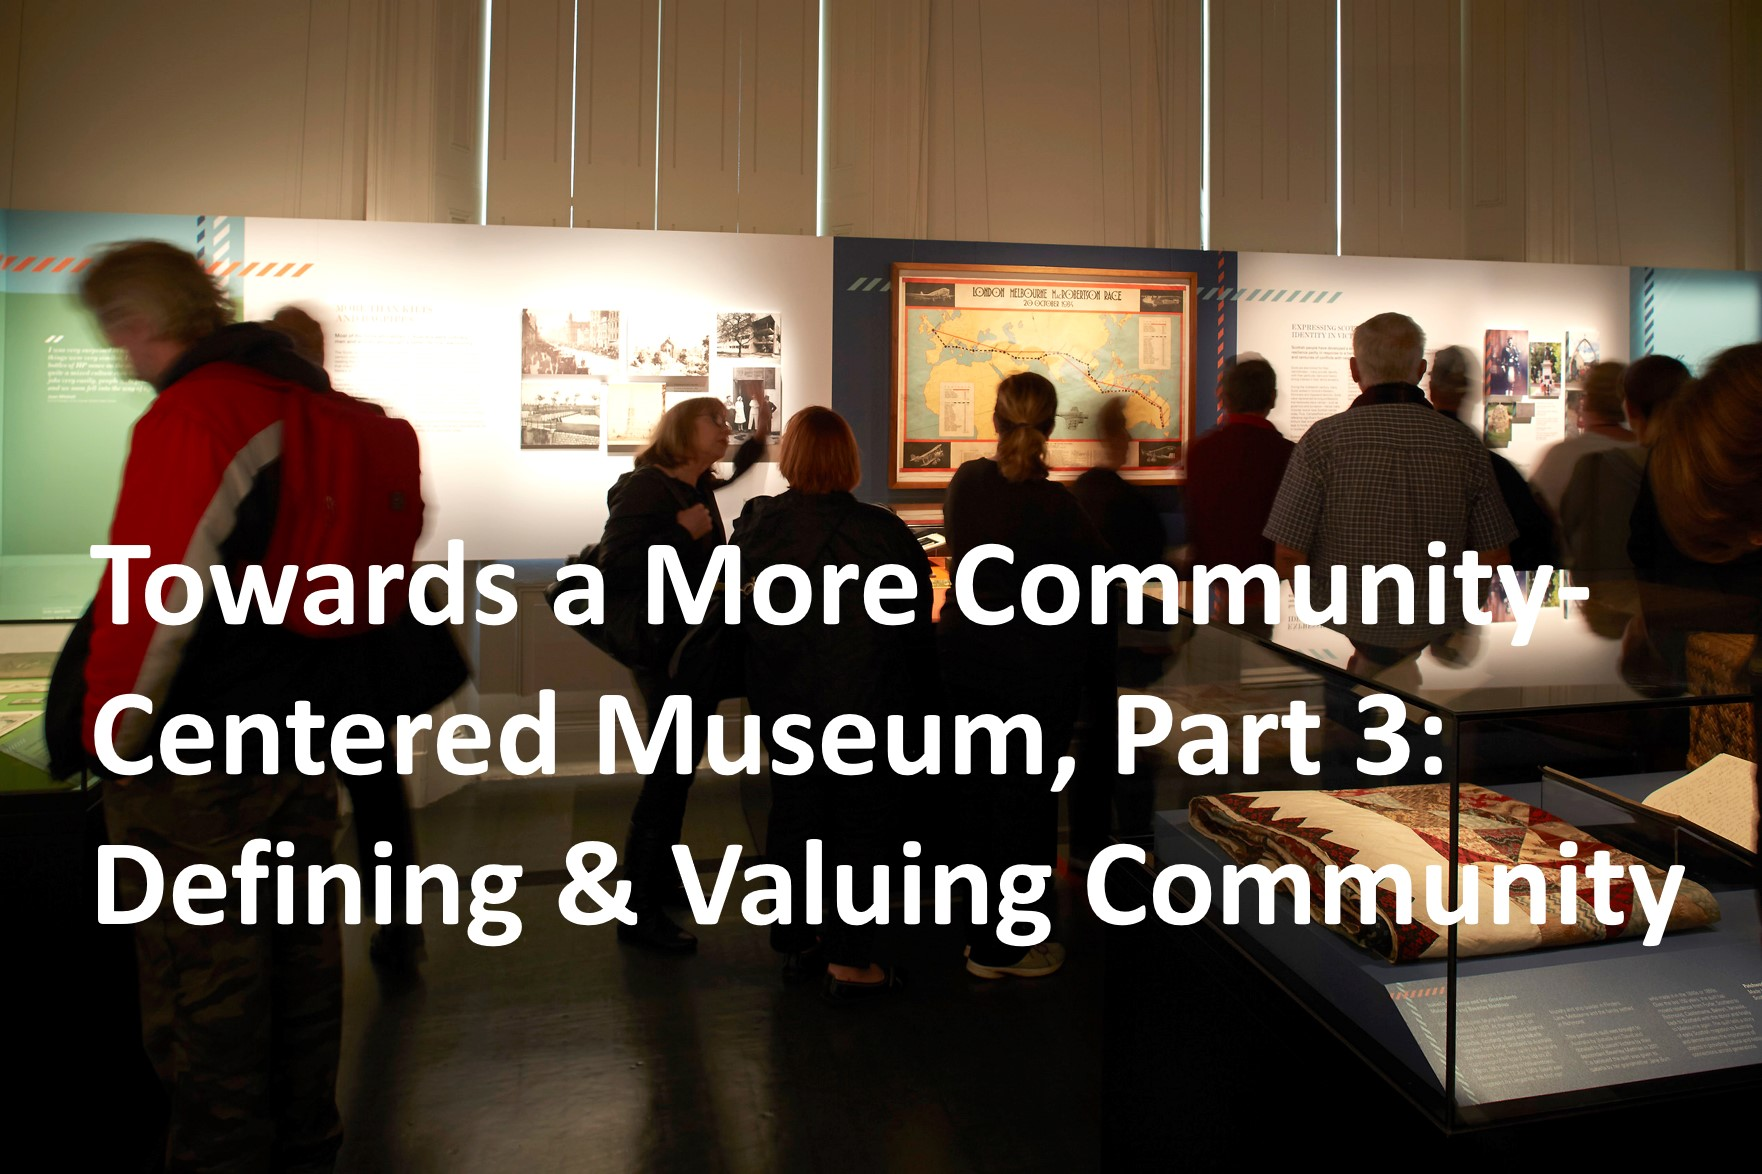 Defining & Valuing Community